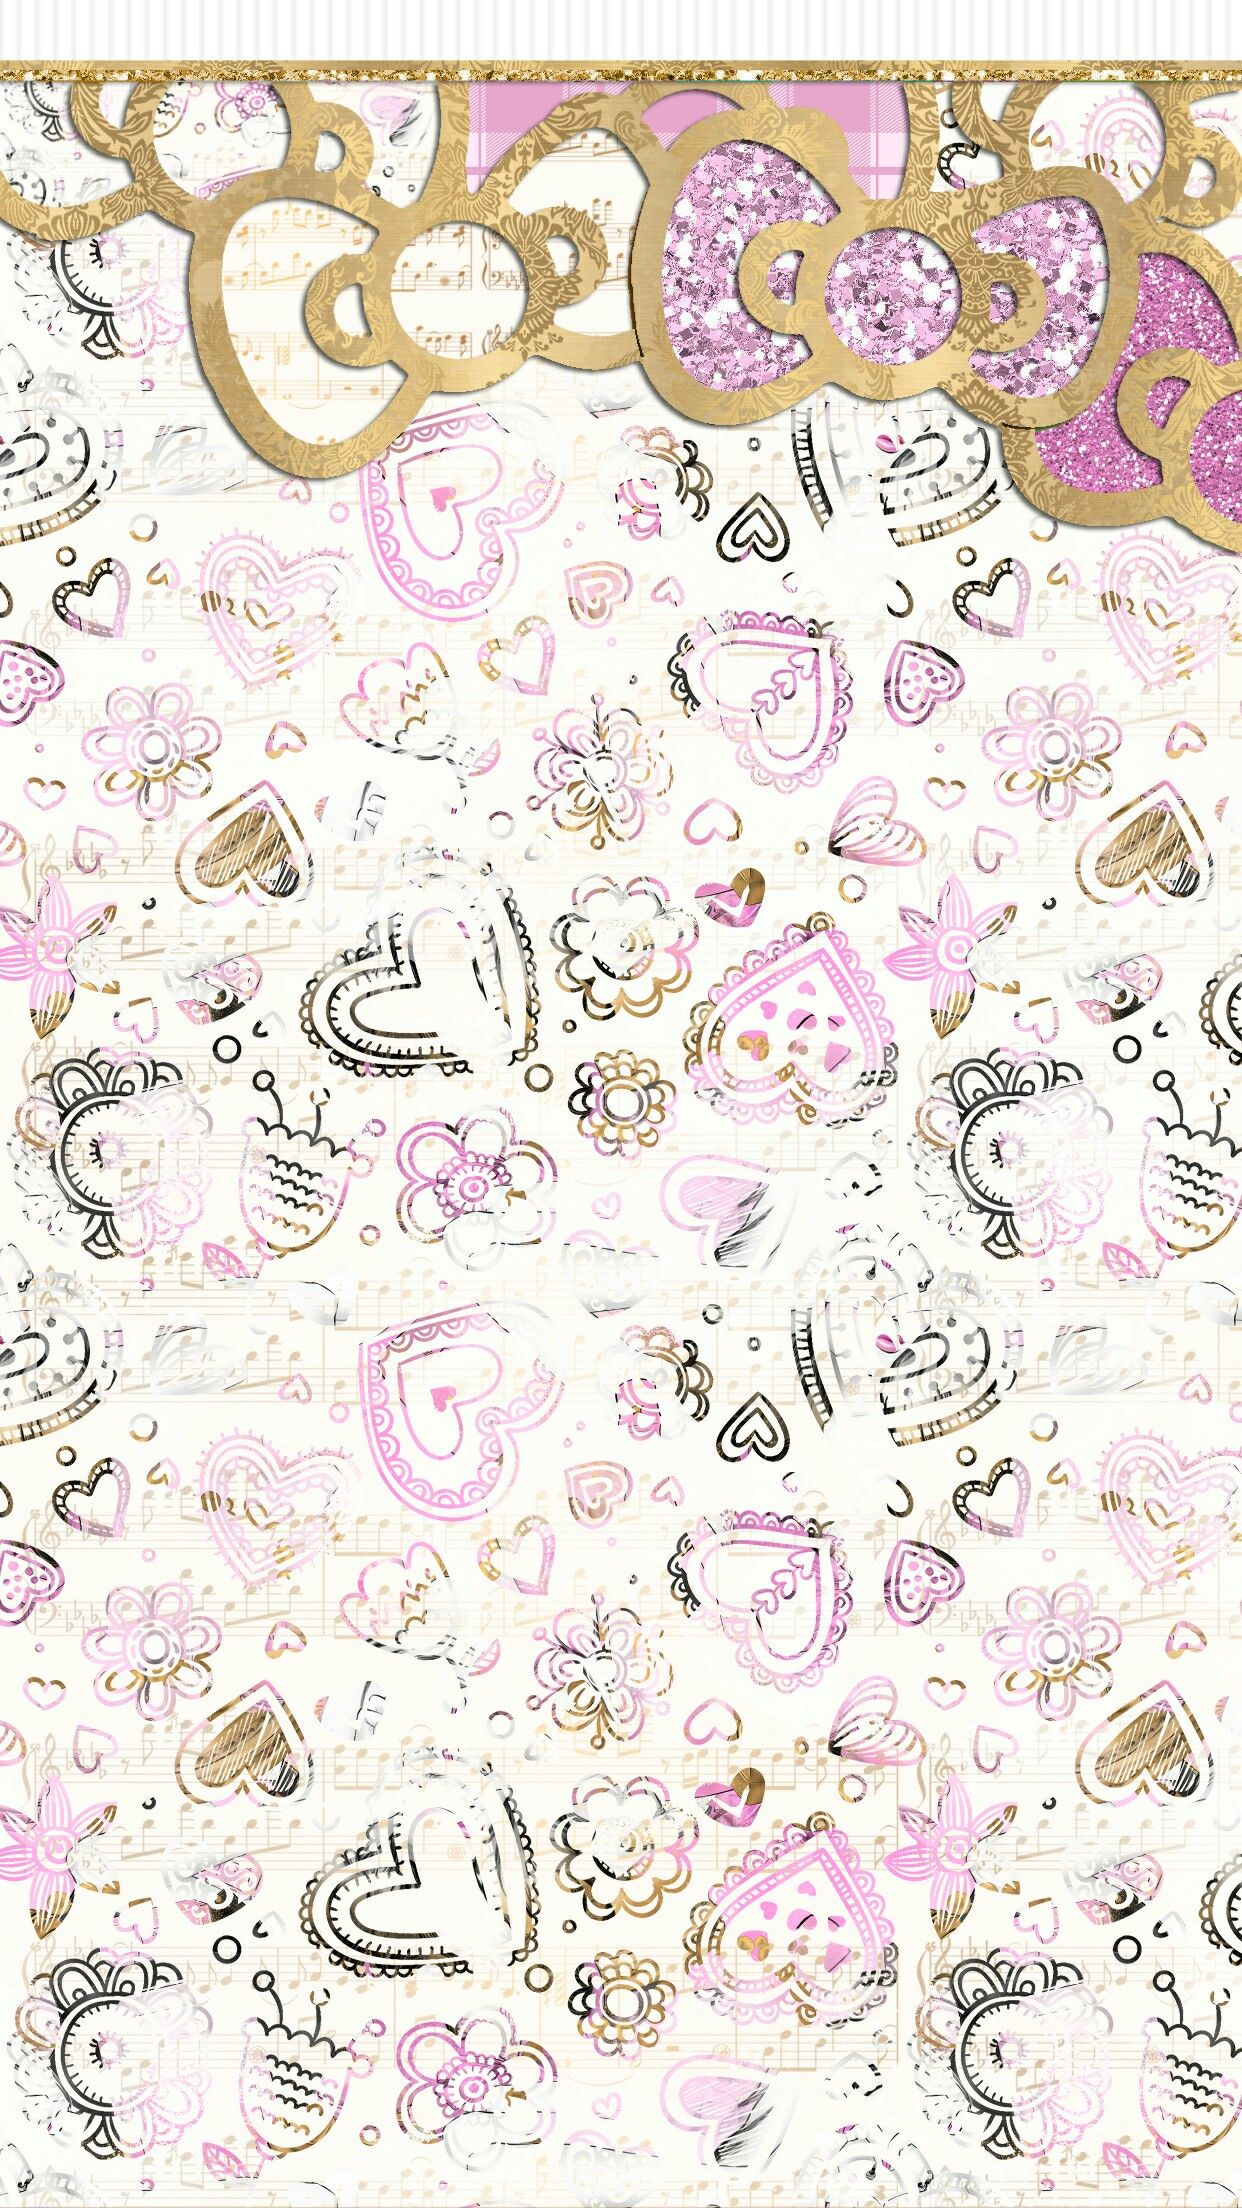 Great Wallpaper Hello Kitty Ipod Touch - 068c1d060a73da424def80adc99ce9b7  Picture_17112.jpg